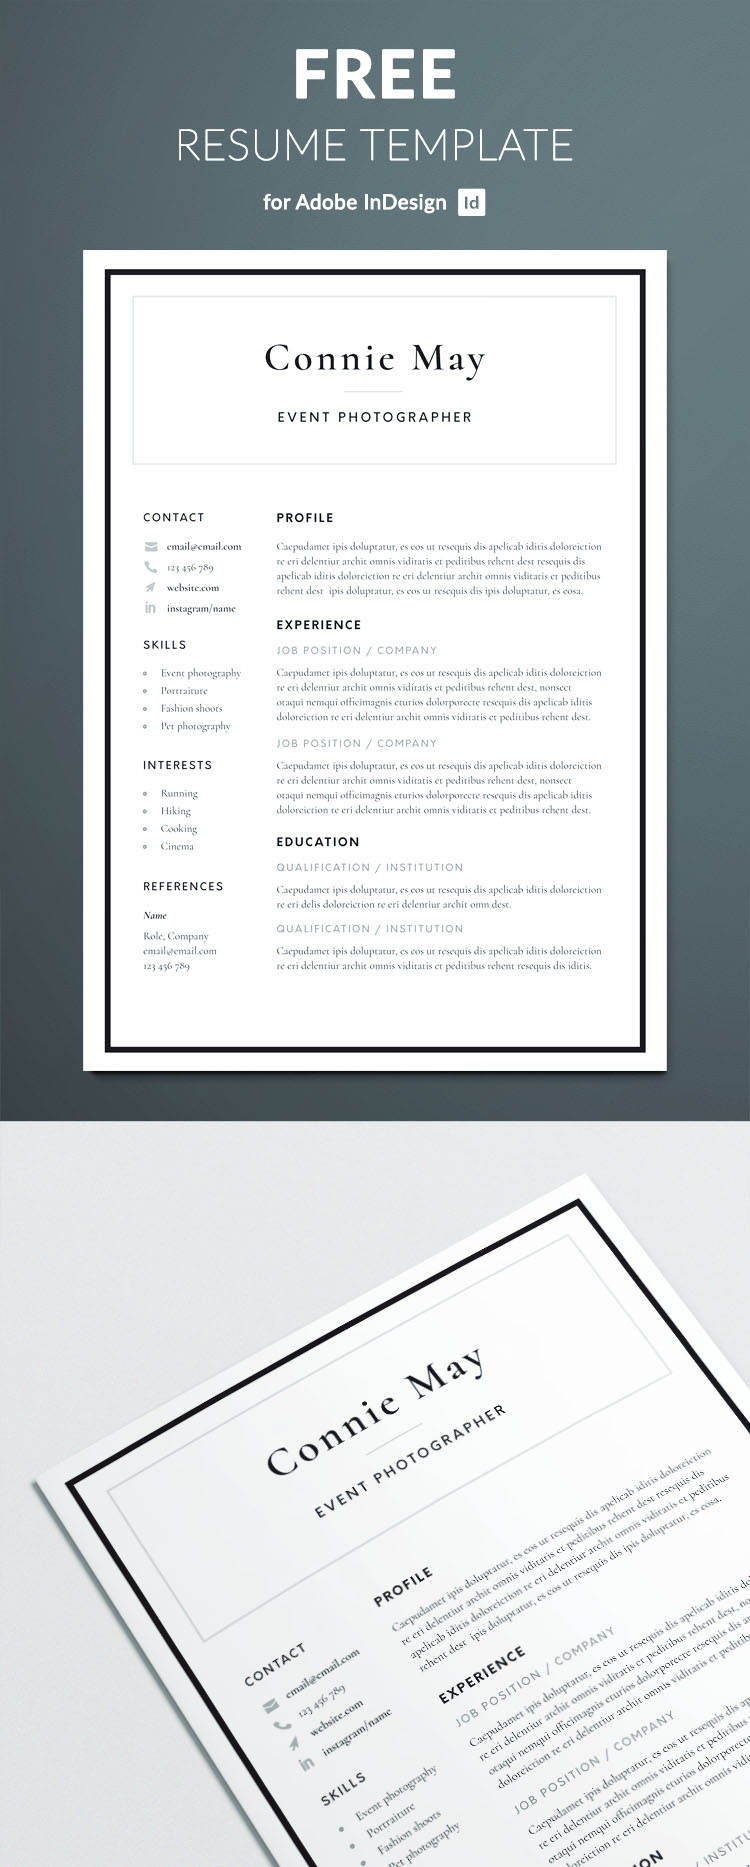 Simple Resume Template - Classic Corporate design - Free Download - Professional Design